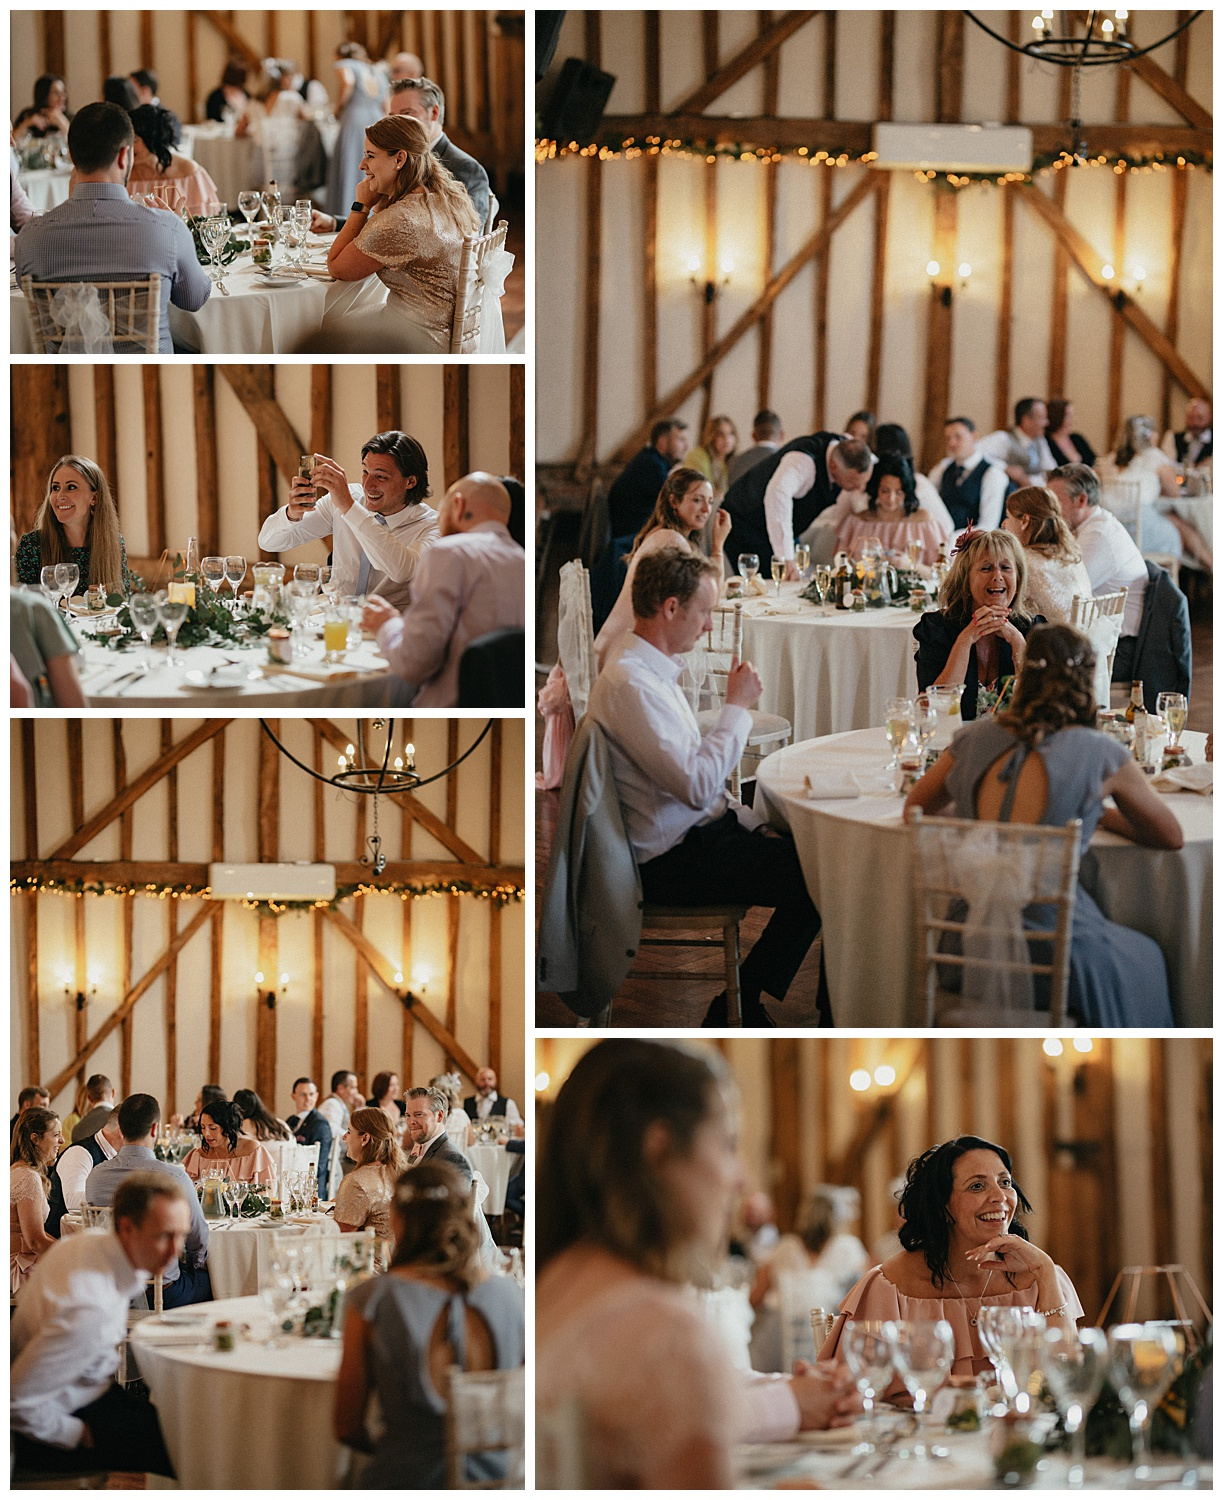 Weddings-at-Crondon-Park-guests-sit-during-meal-time